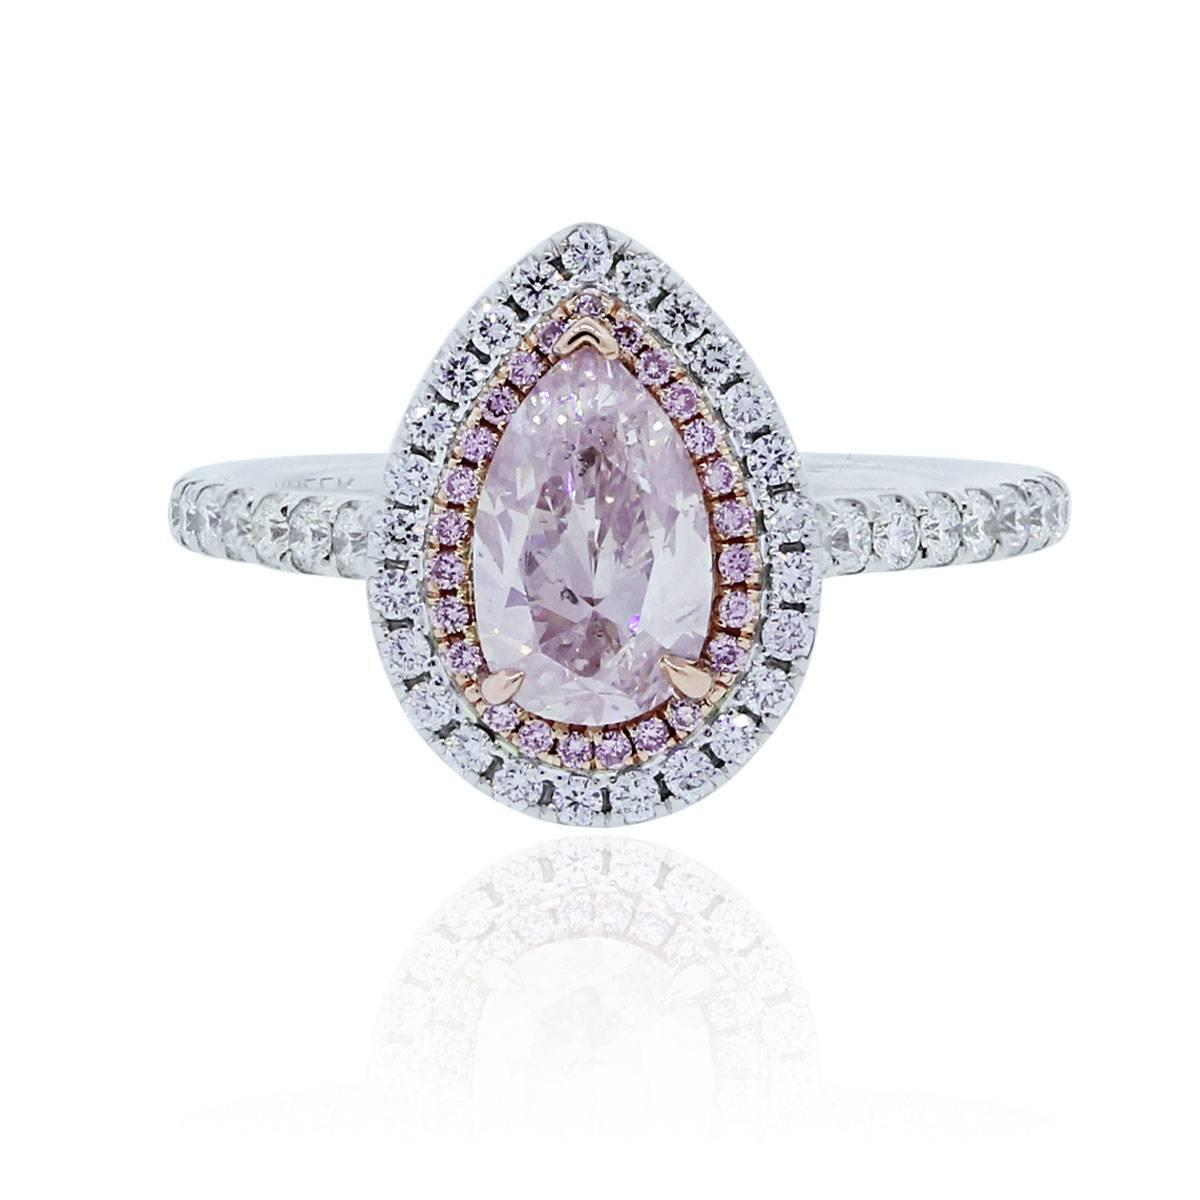 1 01 Carat Pink Pear shaped Diamond Gold Engagement Ring For Sale at 1stdibs